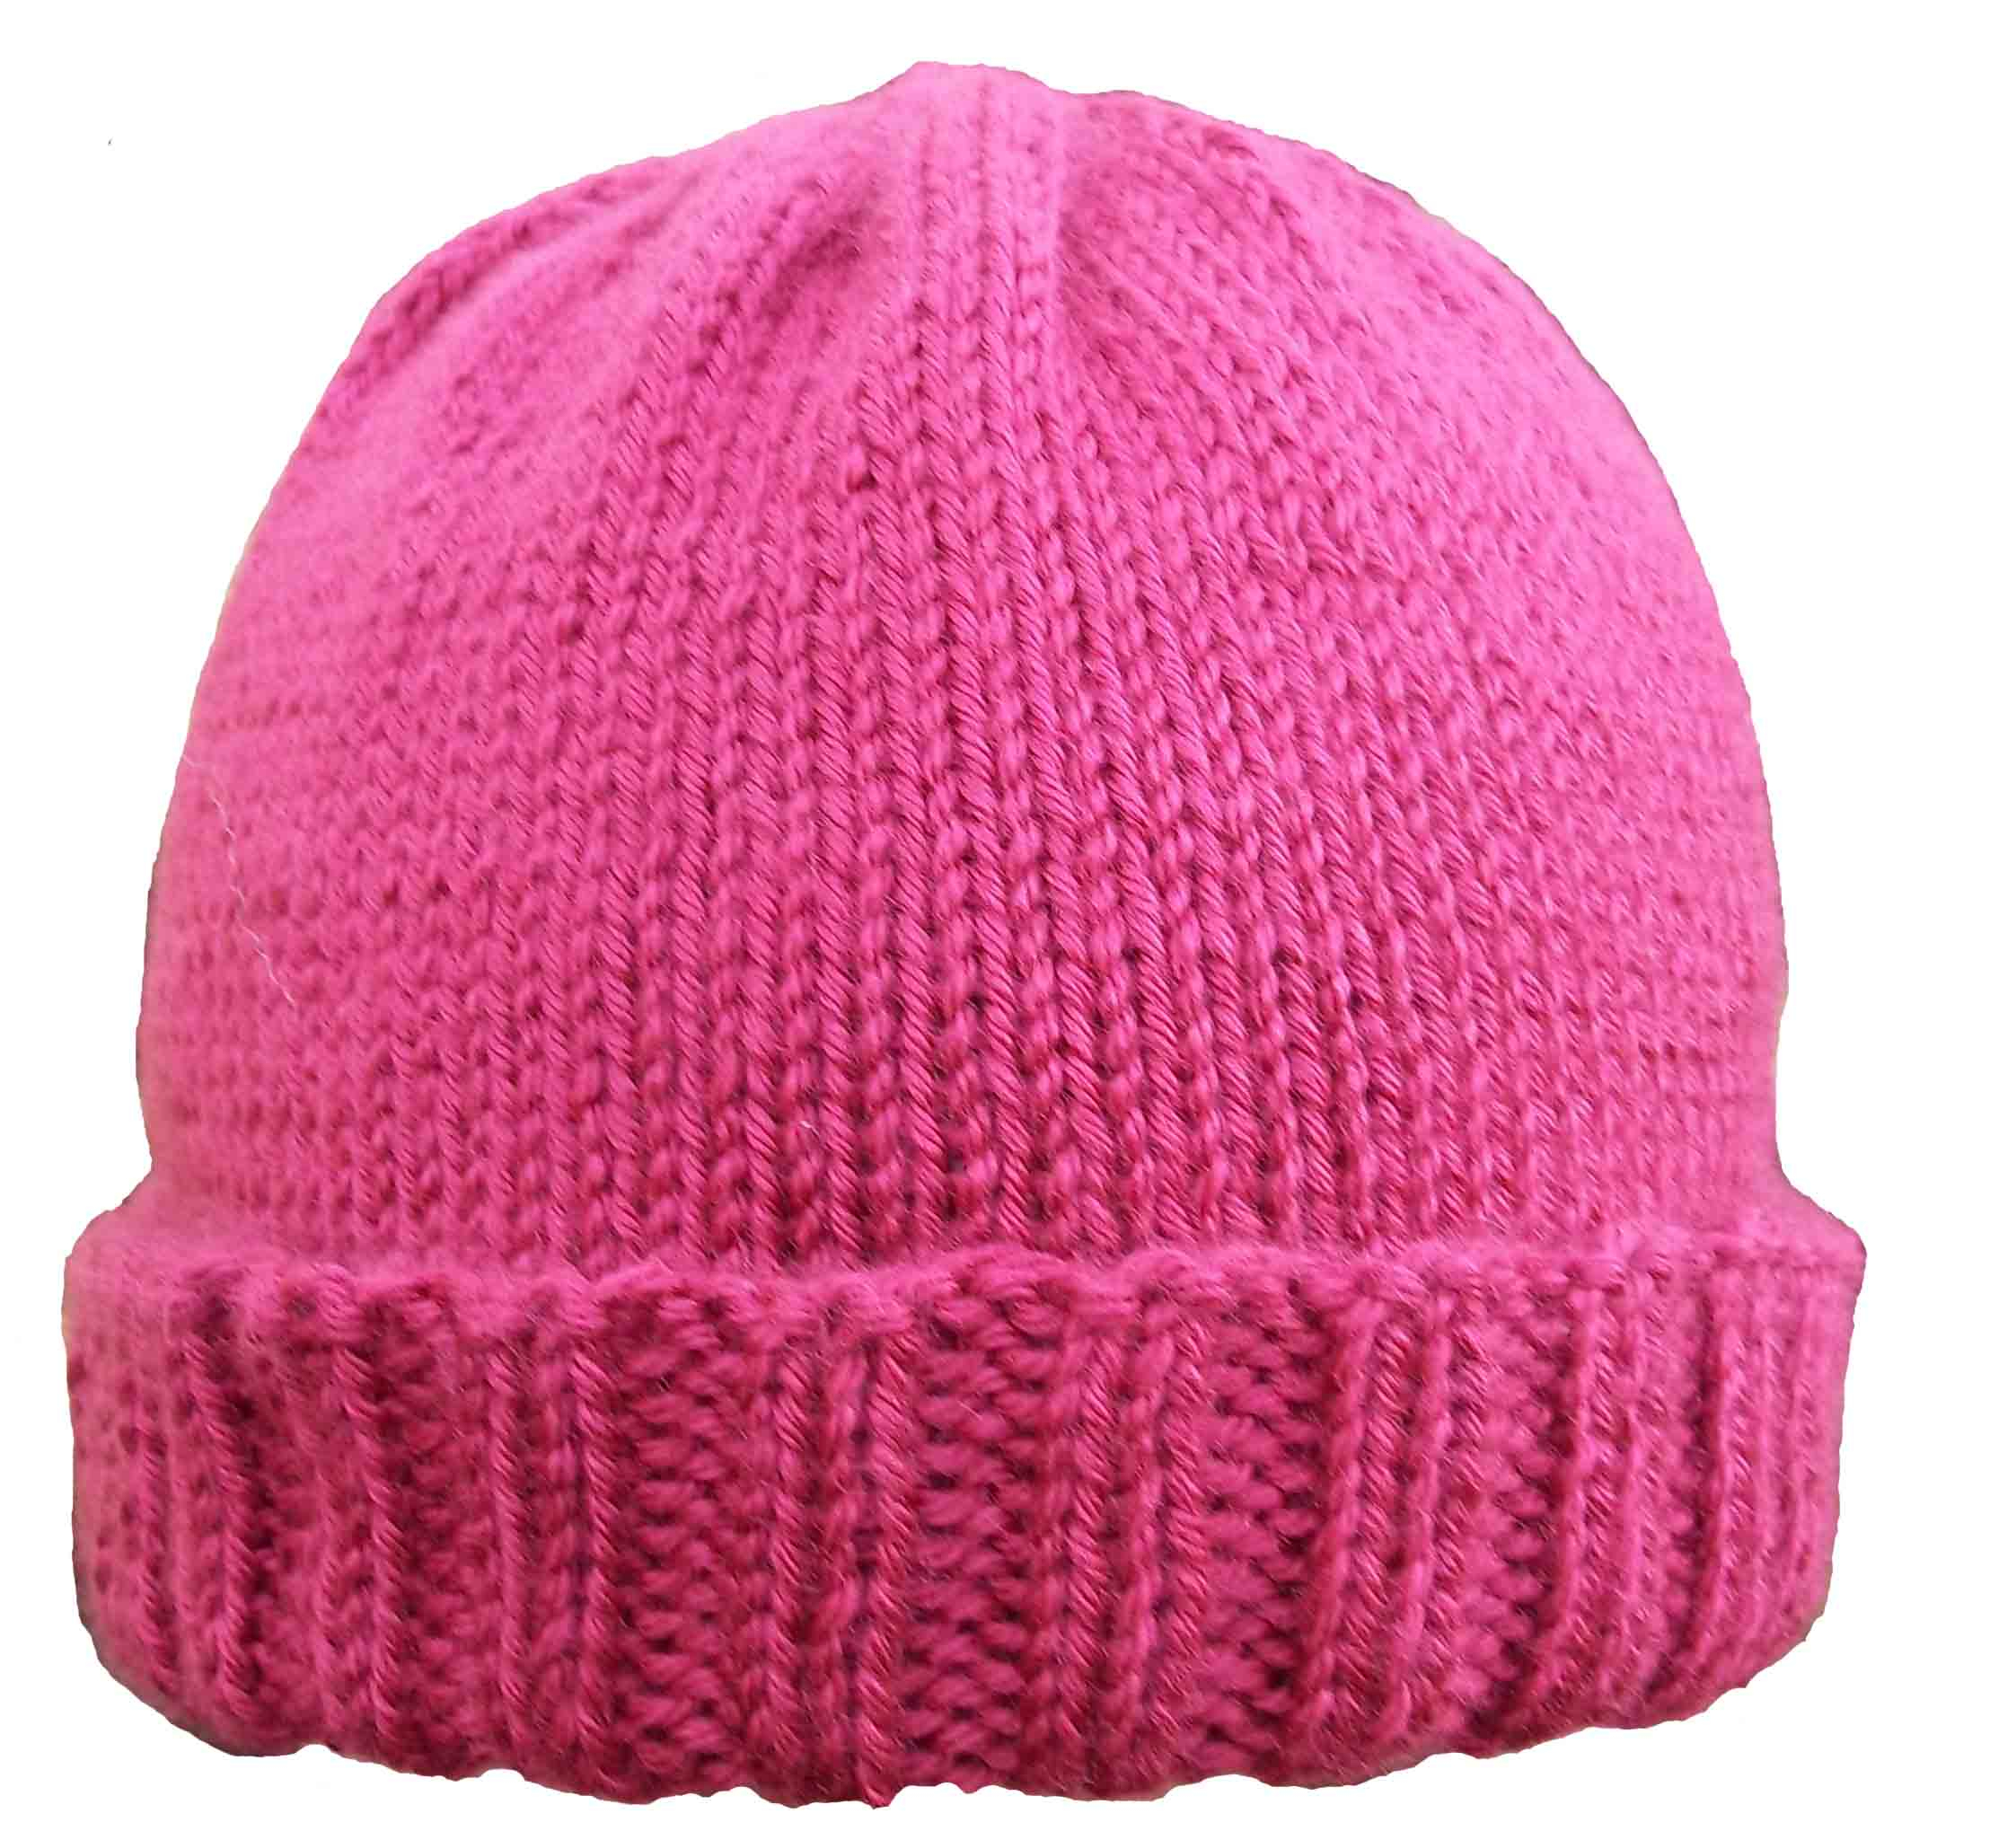 Easy Knit Hat Pattern For Beginners Ribbed Brim Hat Pattern Kniftybitss Blog